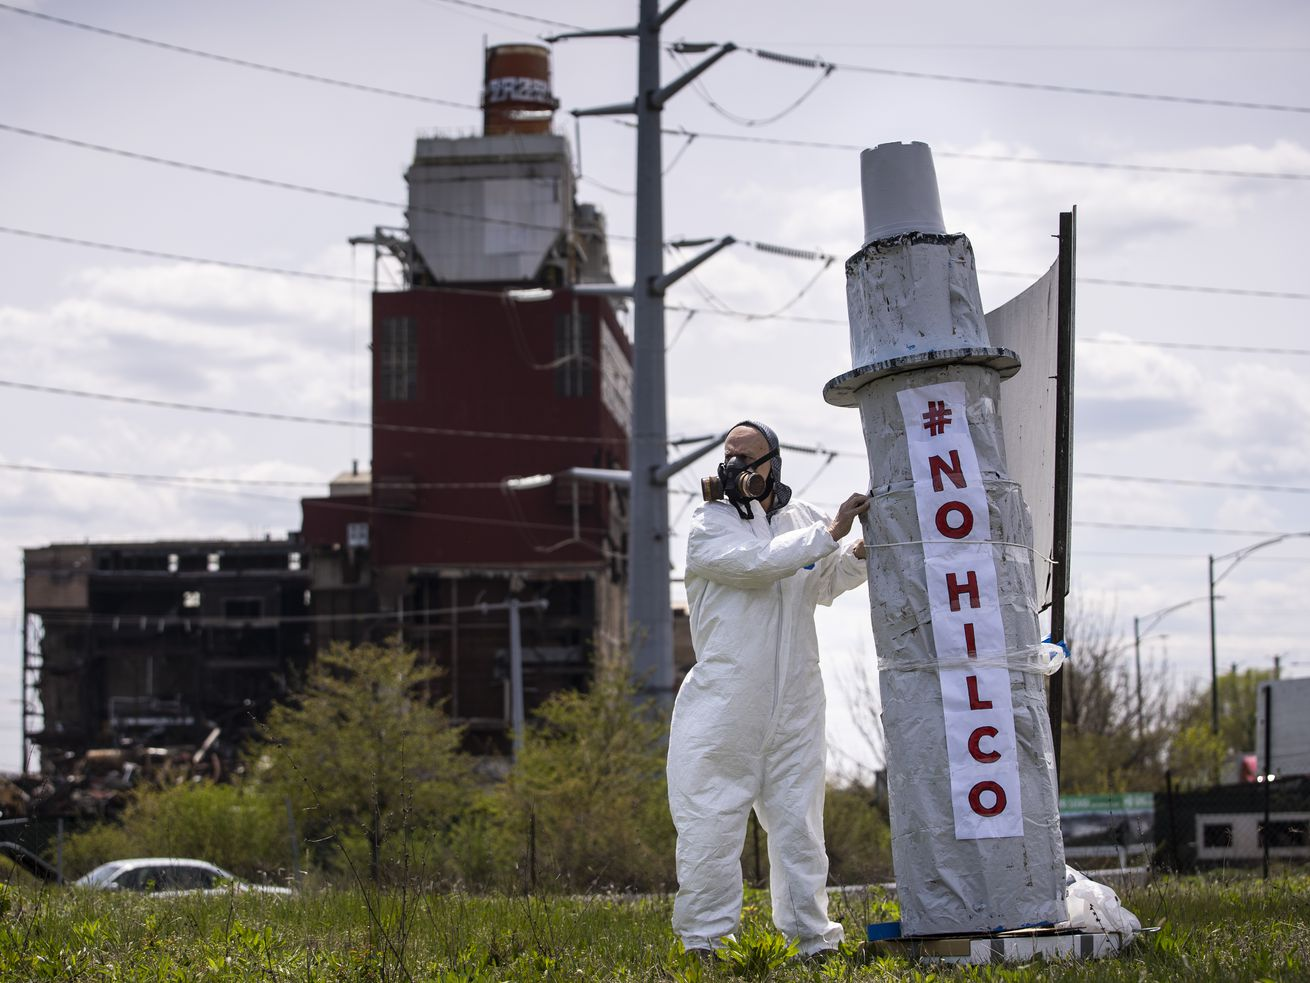 Rafael Cervantes, 72, of Little Village, protests against Hilco near the site of the closed Crawford power plant near West 33rd Street and South Pulaski Road, Thursday afternoon, May 7, 2020. A subcontractor demolished a smokestack at the plant in April, bringing a giant plume of dust to the neighborhood, making it difficult to breathe during the coronavirus pandemic. | Ashlee Rezin Garcia/Sun-Times